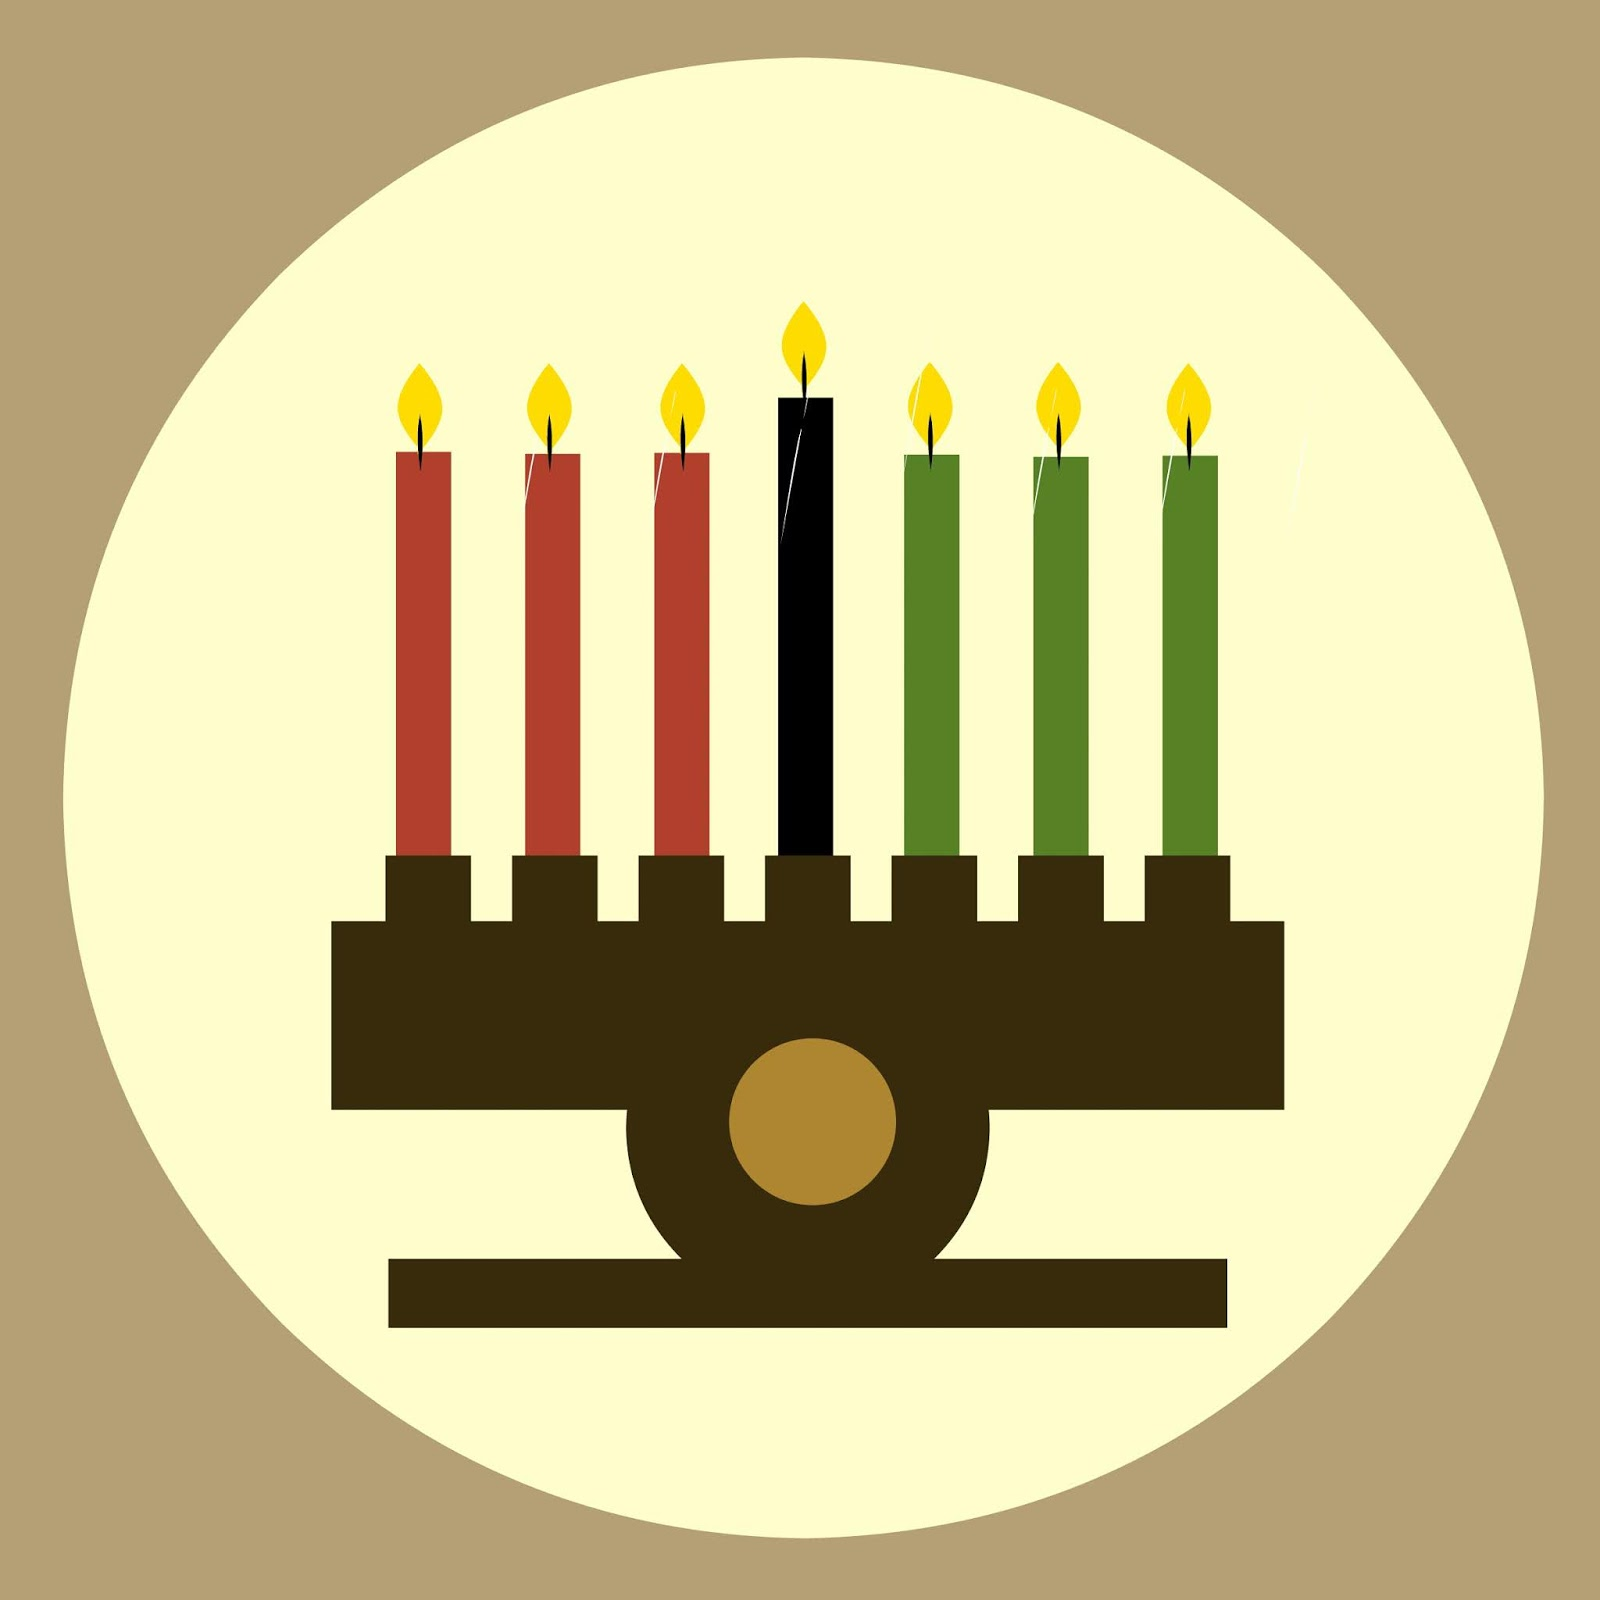 kwanzaa, african, celebration, culture, american, holiday, greeting, unity, tradition, heritage, design, candle, red, africa, ritual, seven, spiritual, winter, traditional, decoration, light, season